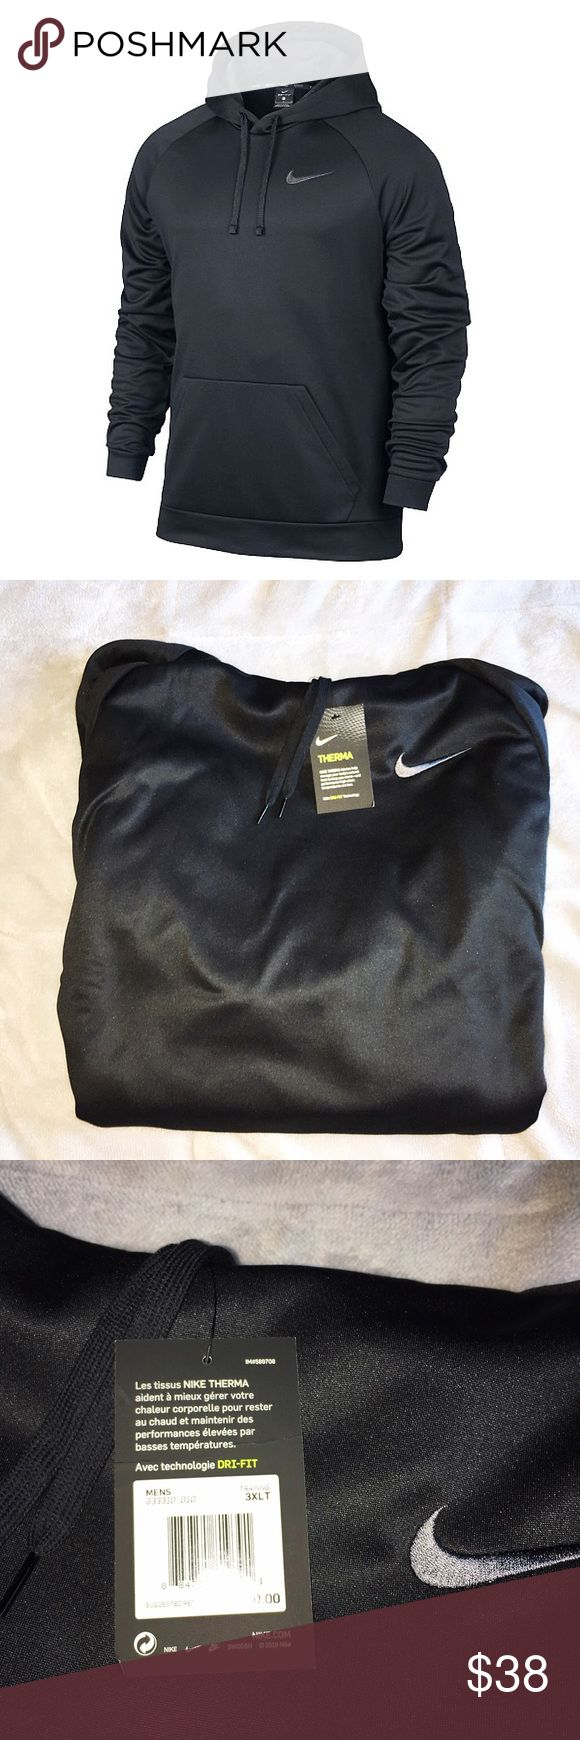 Men's NIKE Sweatshirt - 3XLT (NWT) Size 3XL big& tall fit. Men's. Black in color. Therma fit- dri fit. Hooded. Pullover. Front pocket. Front Nike logo. NWT- $50.00. Nike Shirts Sweatshirts & Hoodies